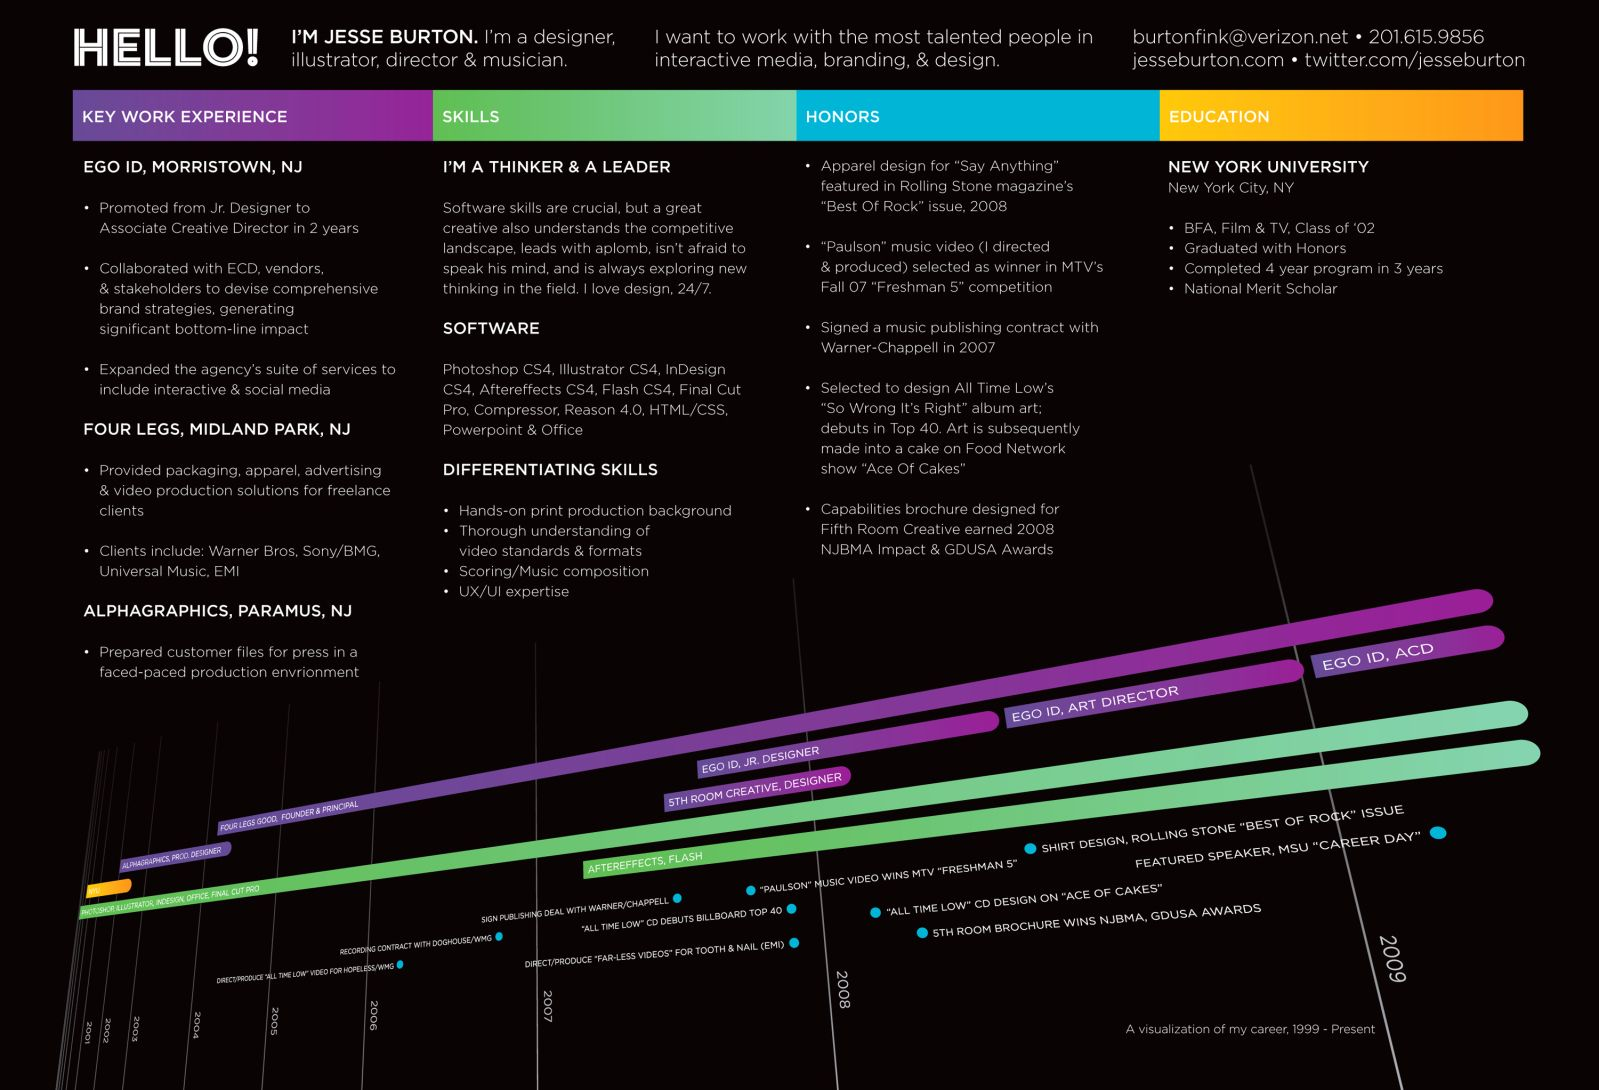 Another Timeline Resume Design Pinterest Infographic Resume